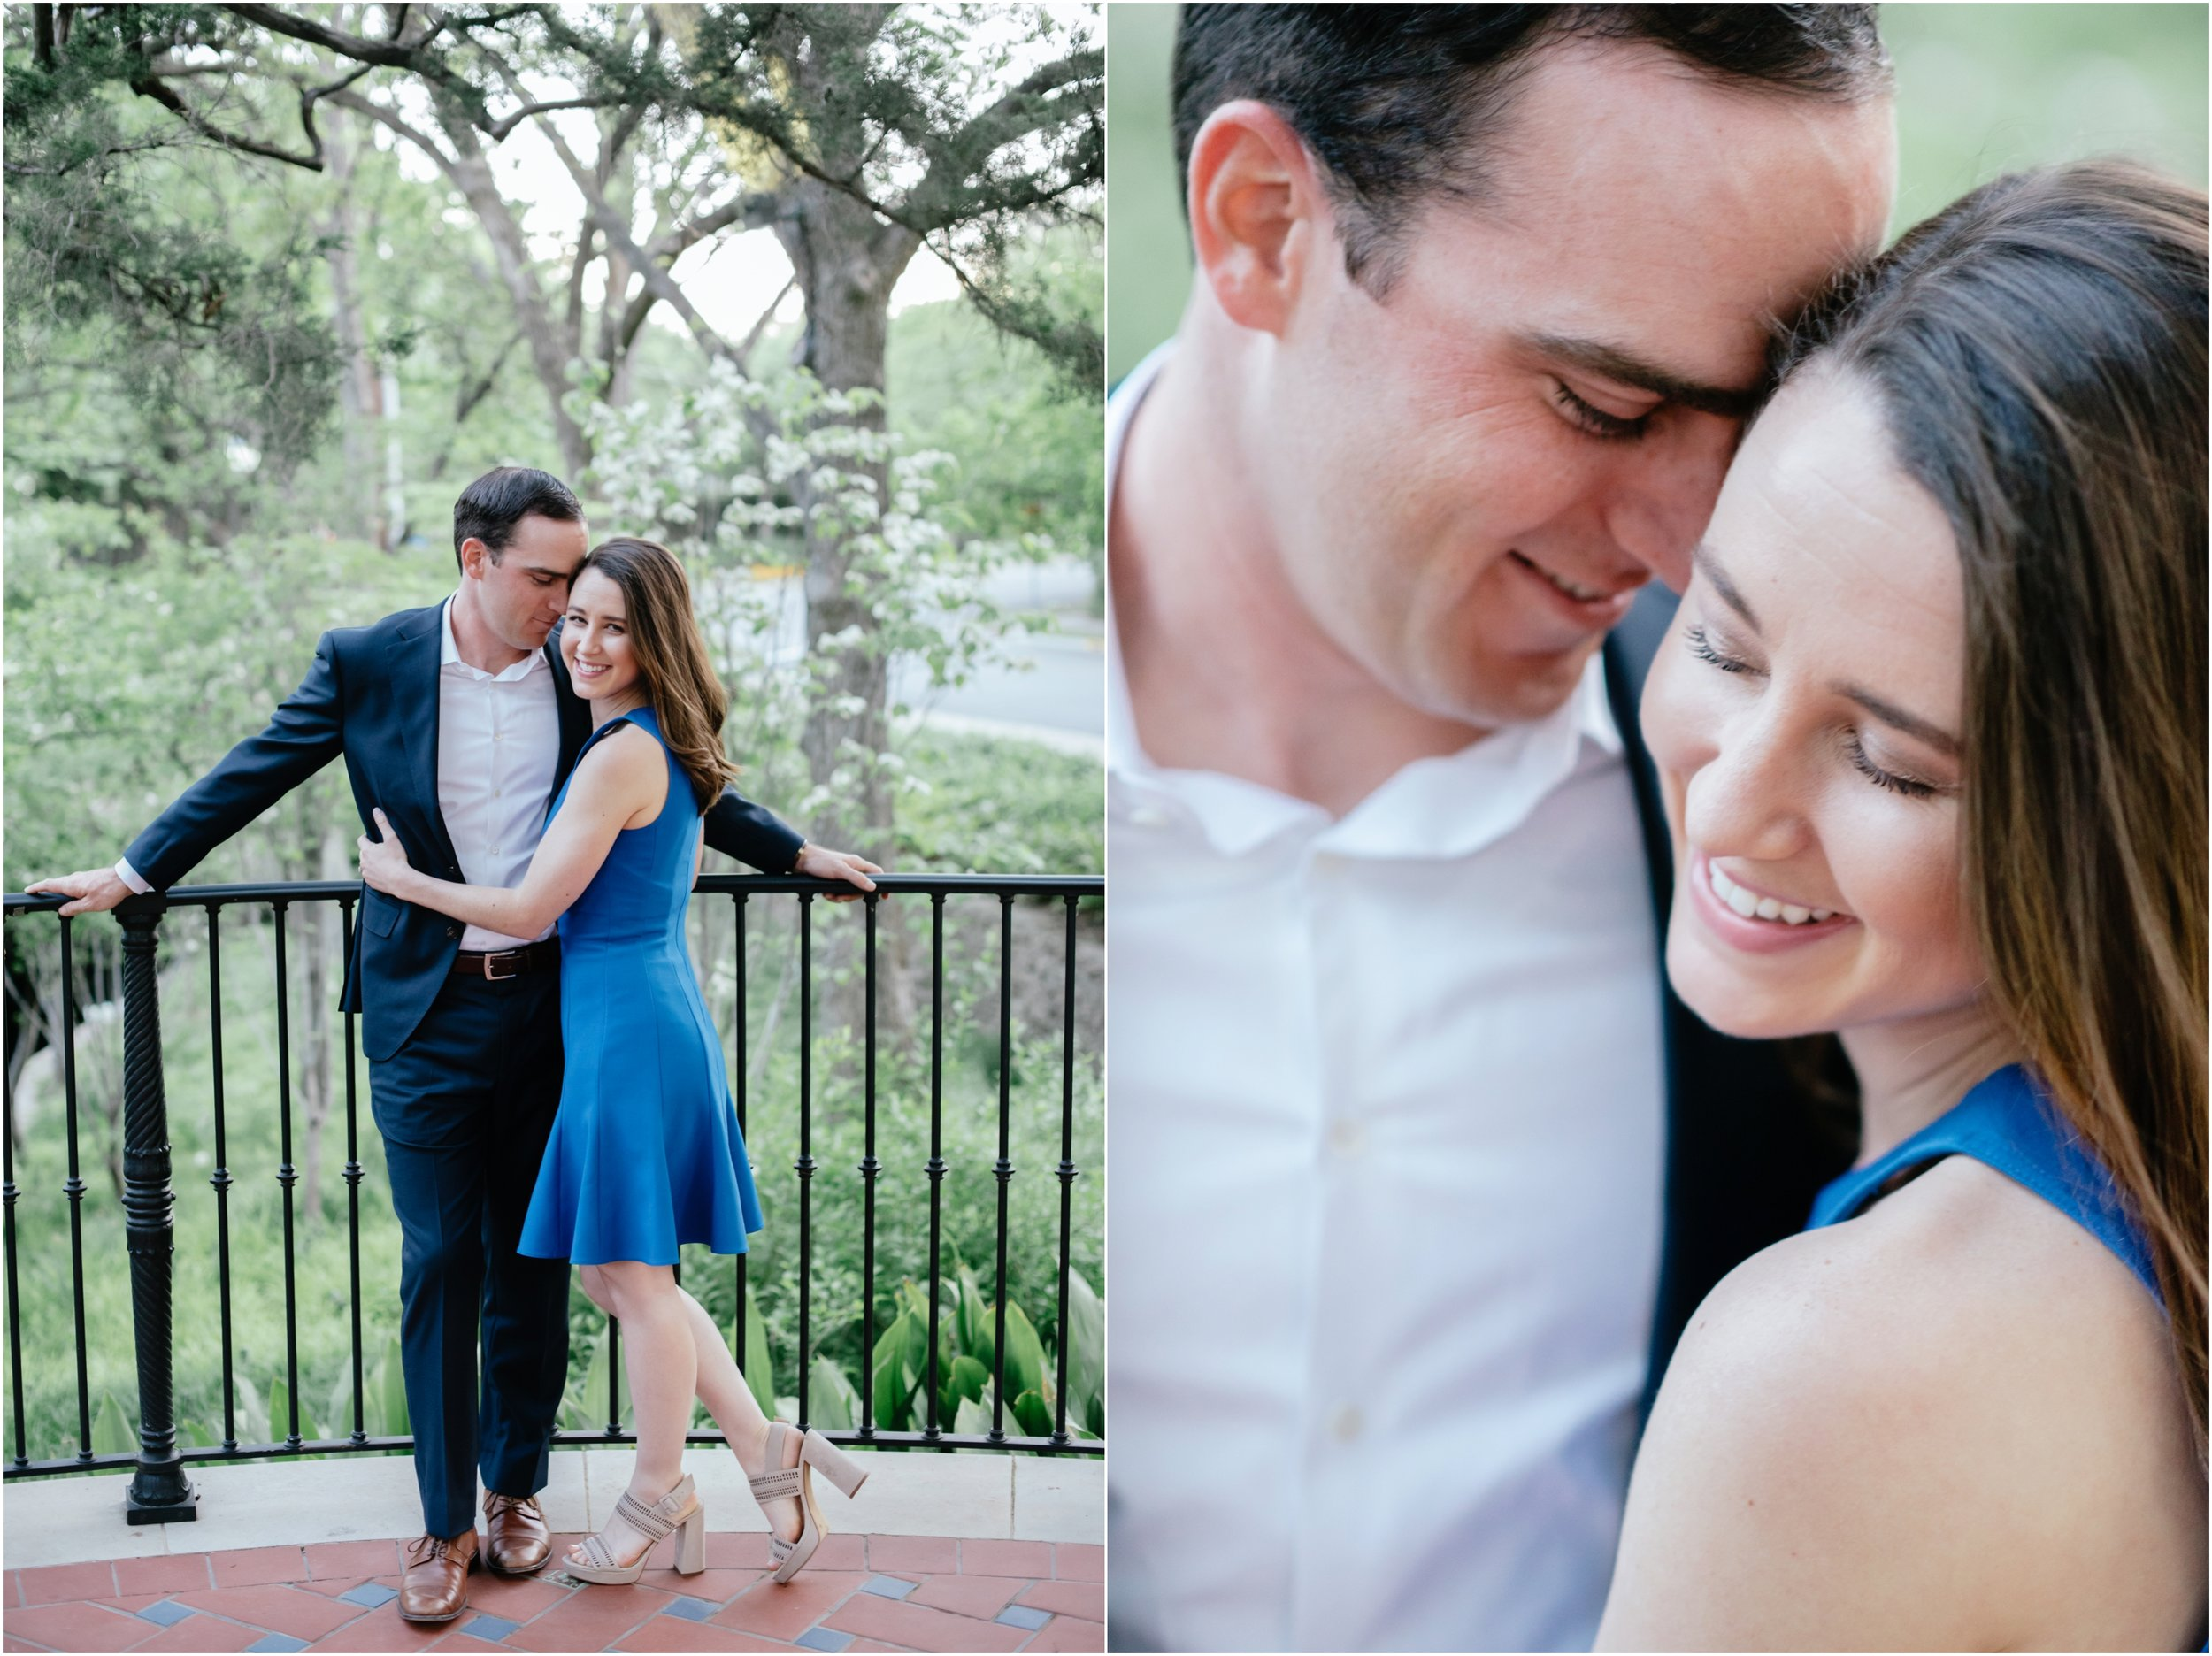 dallasweddingphotographer_texasweddingphotographer_texasweddingphotographers_dallasweddingphotographer_mattandjulieweddings_0791.jpg